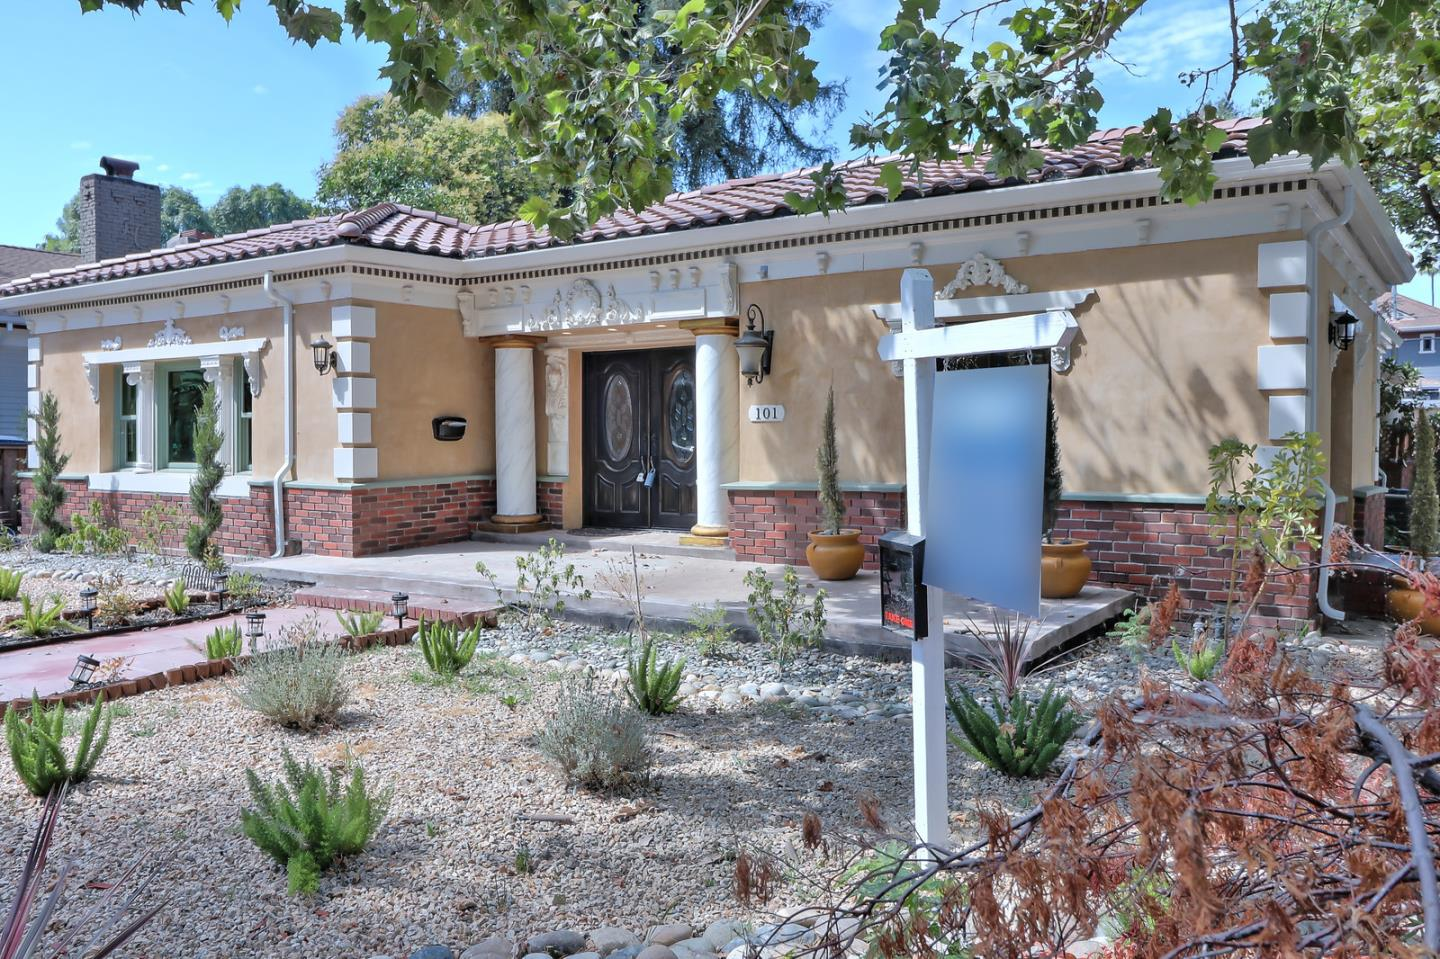 Additional photo for property listing at 101 S 13th Street  San Jose, California 95112 Estados Unidos